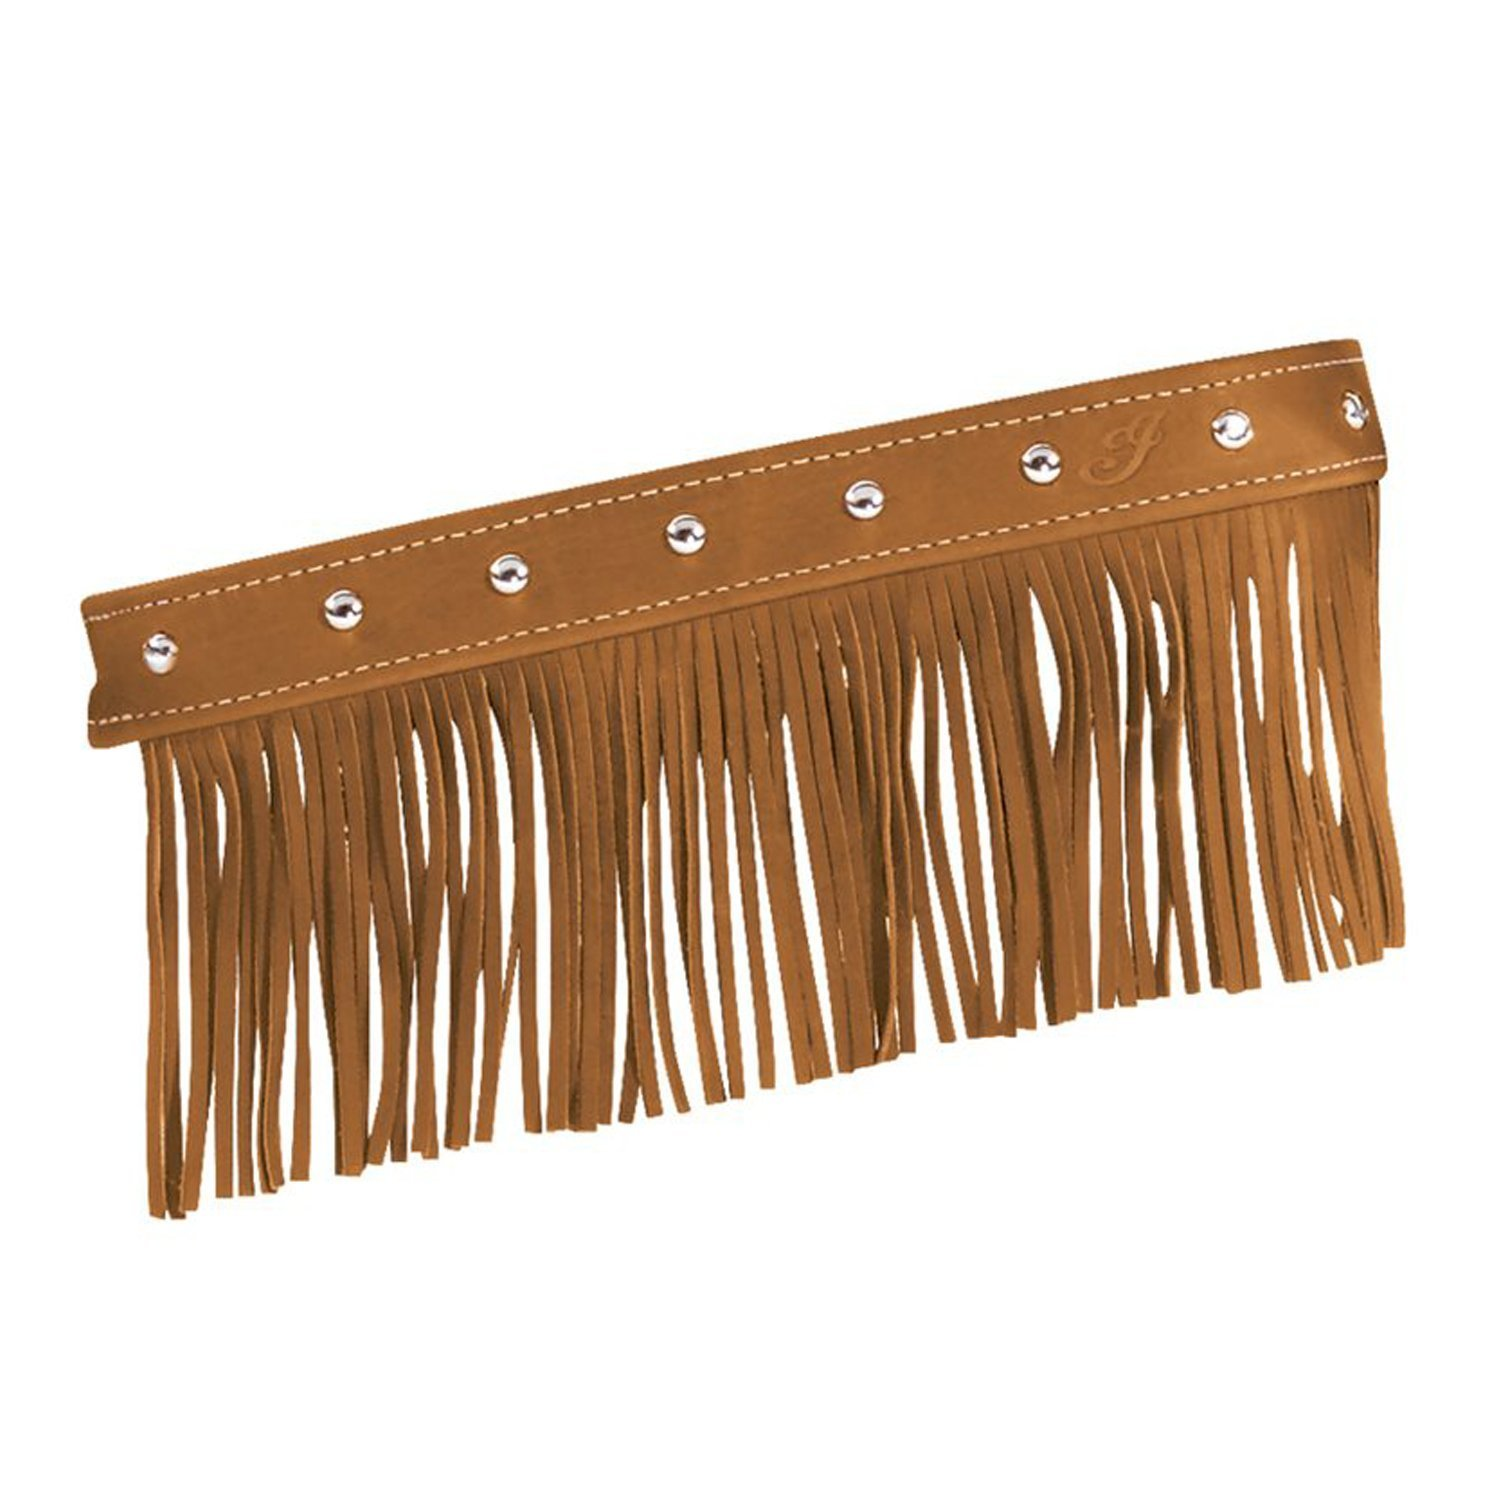 Genuine Leather Floorboard Trim With Fringe – Desert Tan w/ Studs